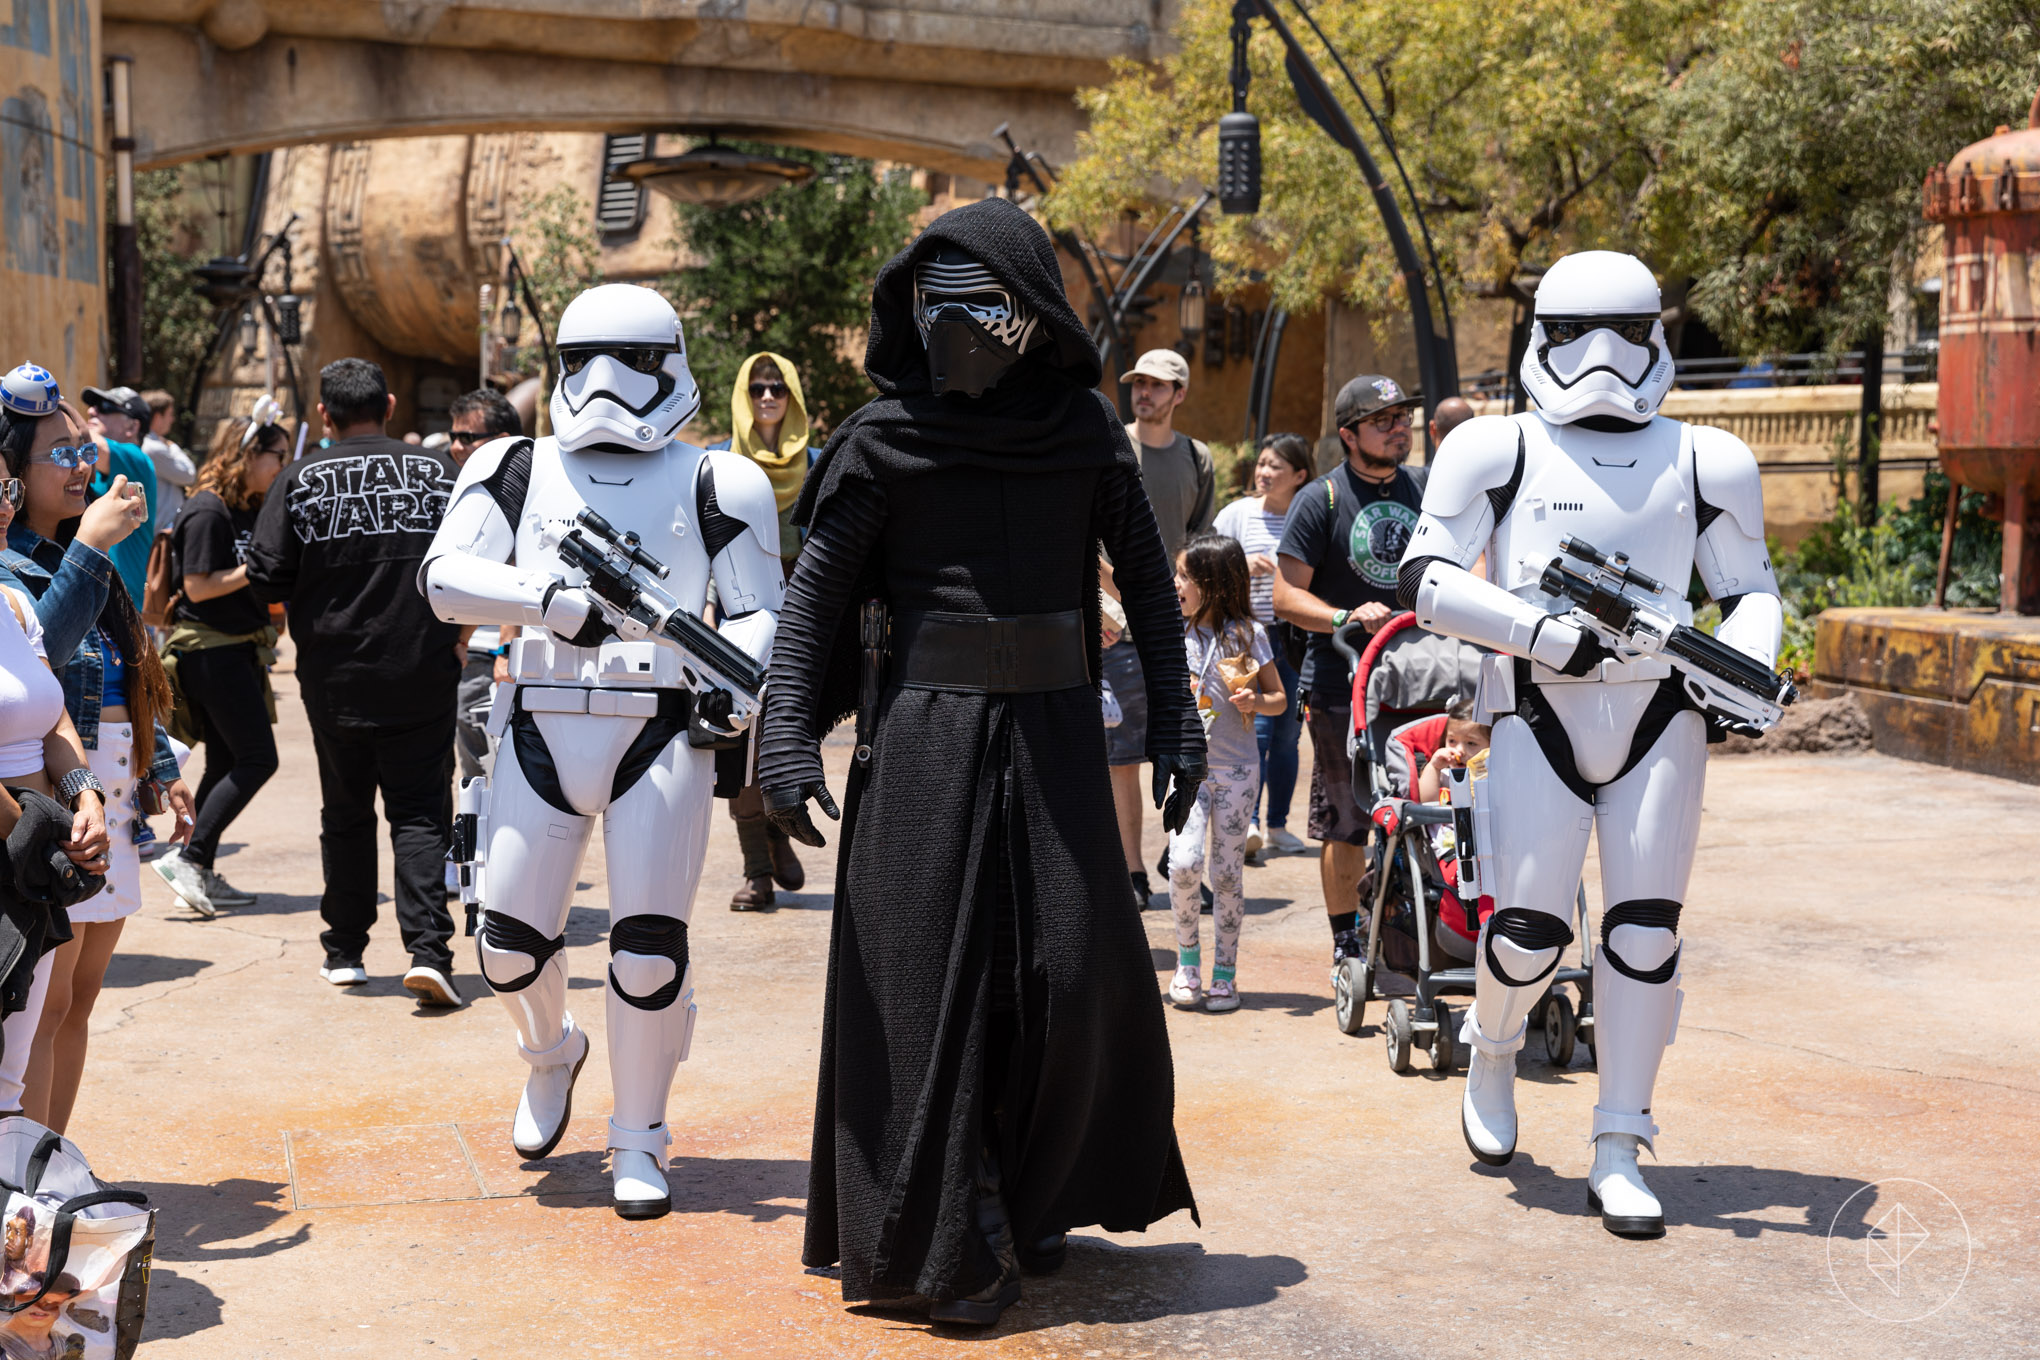 You can't wear Star Wars costumes in Galaxy's Edge — not even the ones on sale